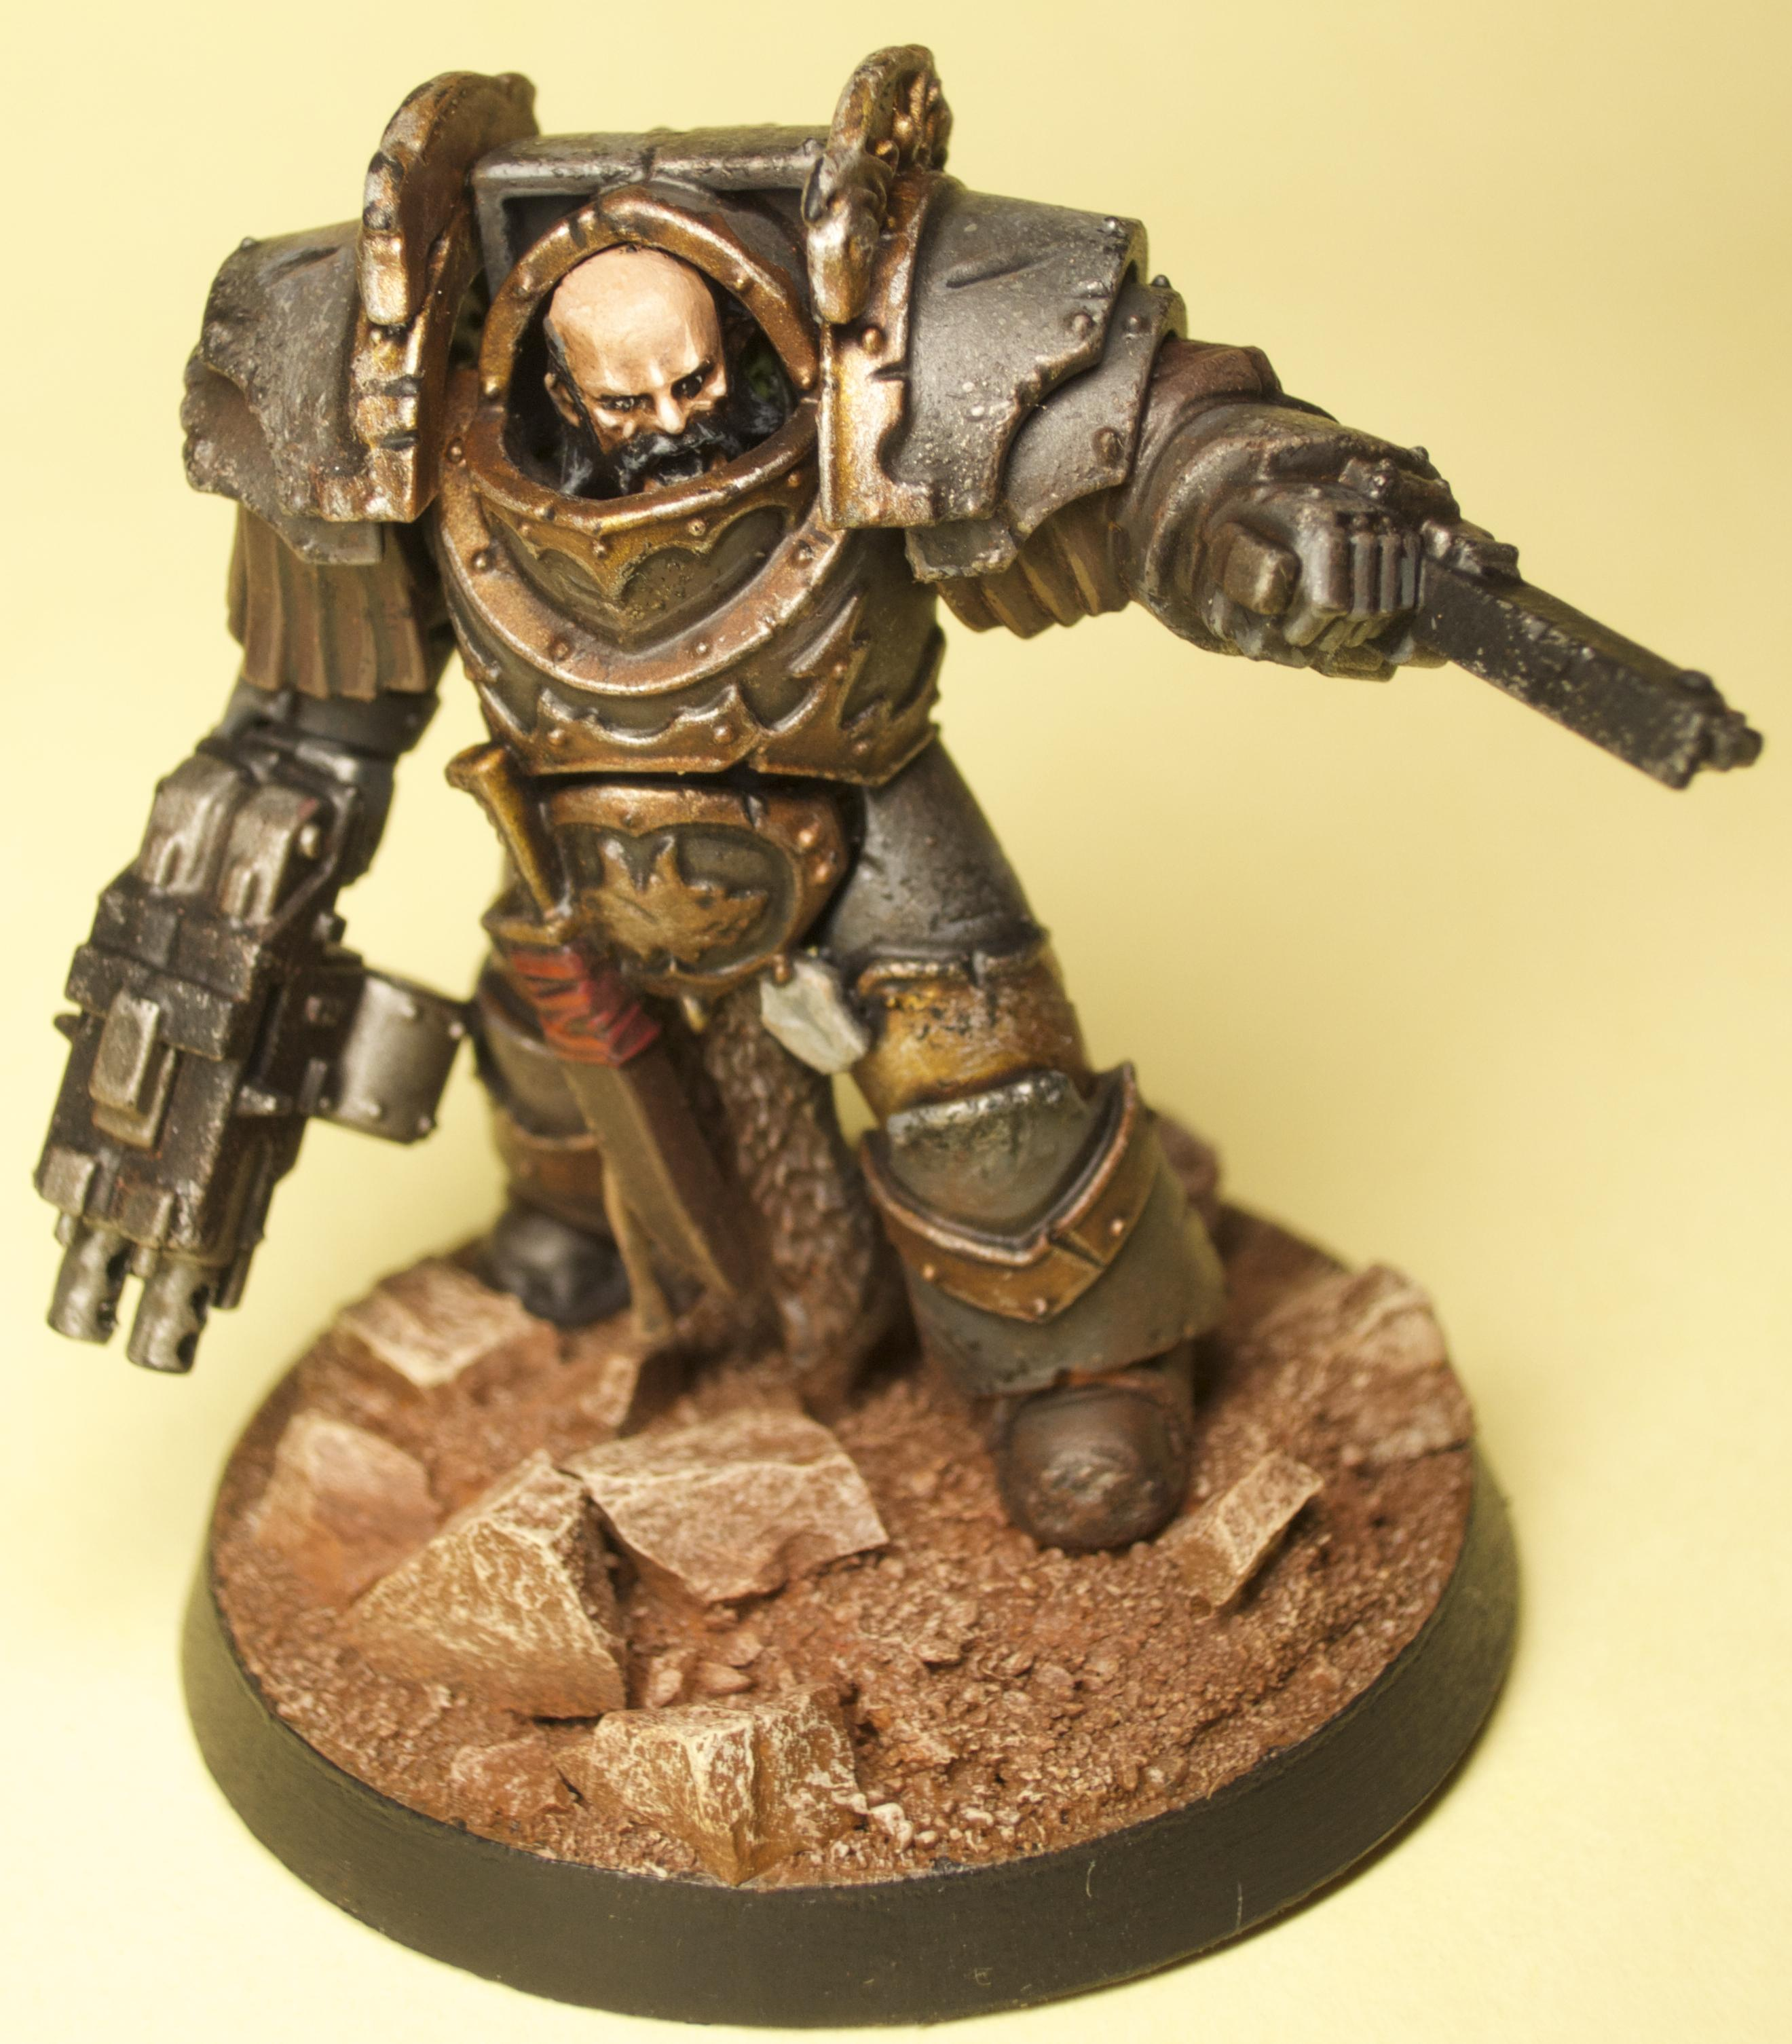 30k, Cataphractii, Forge World, Heresy, Legion, Space Marines, Space Wolves, Terminator Armor, Weathered, Wolf Guard